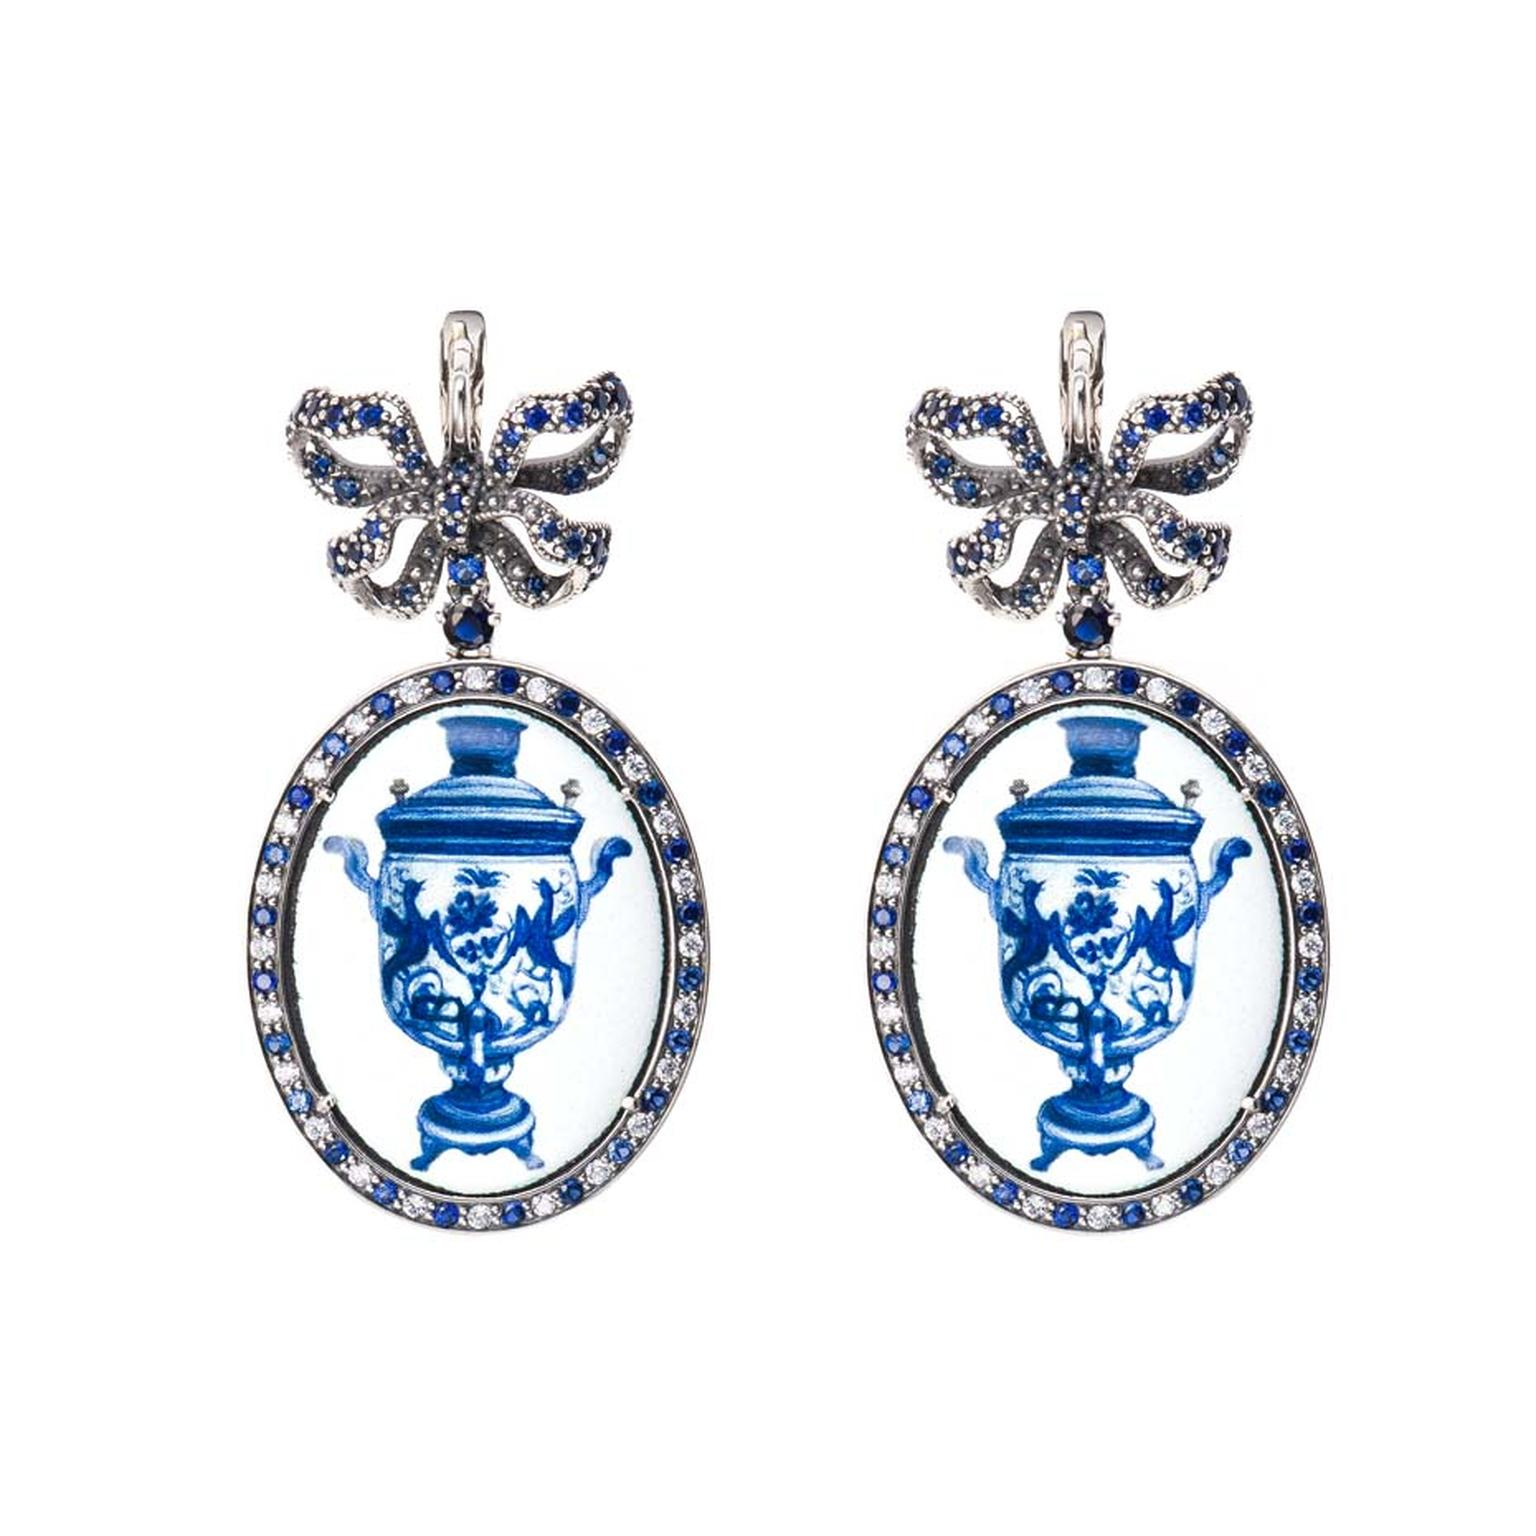 Petr Axenoff silver Samovarchik earrings featuring enamel and sapphires